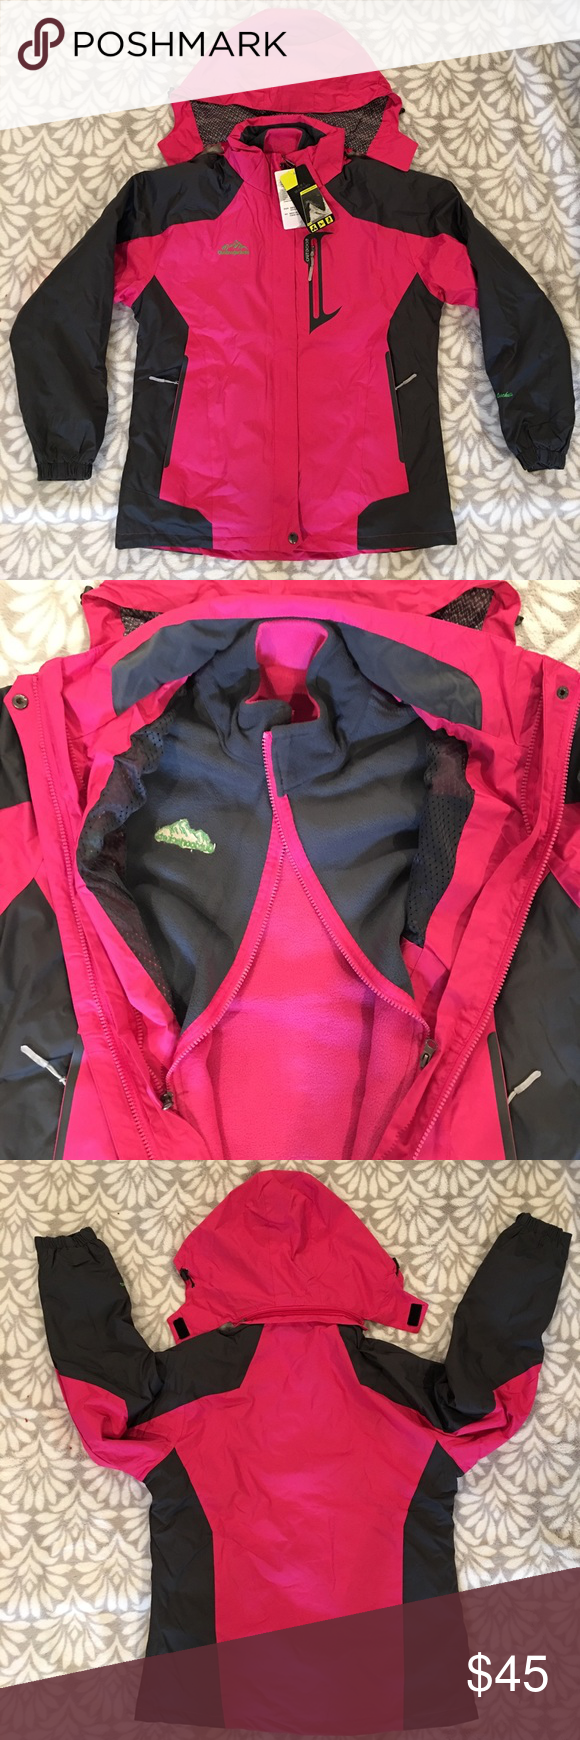 3174e62ef Deshengren Winter Three-in-one Jacket NWT 3 in 1 jacket, removable inner  fleece jacket and removable hood. Runs small. Tag says 2xl but runs snug.